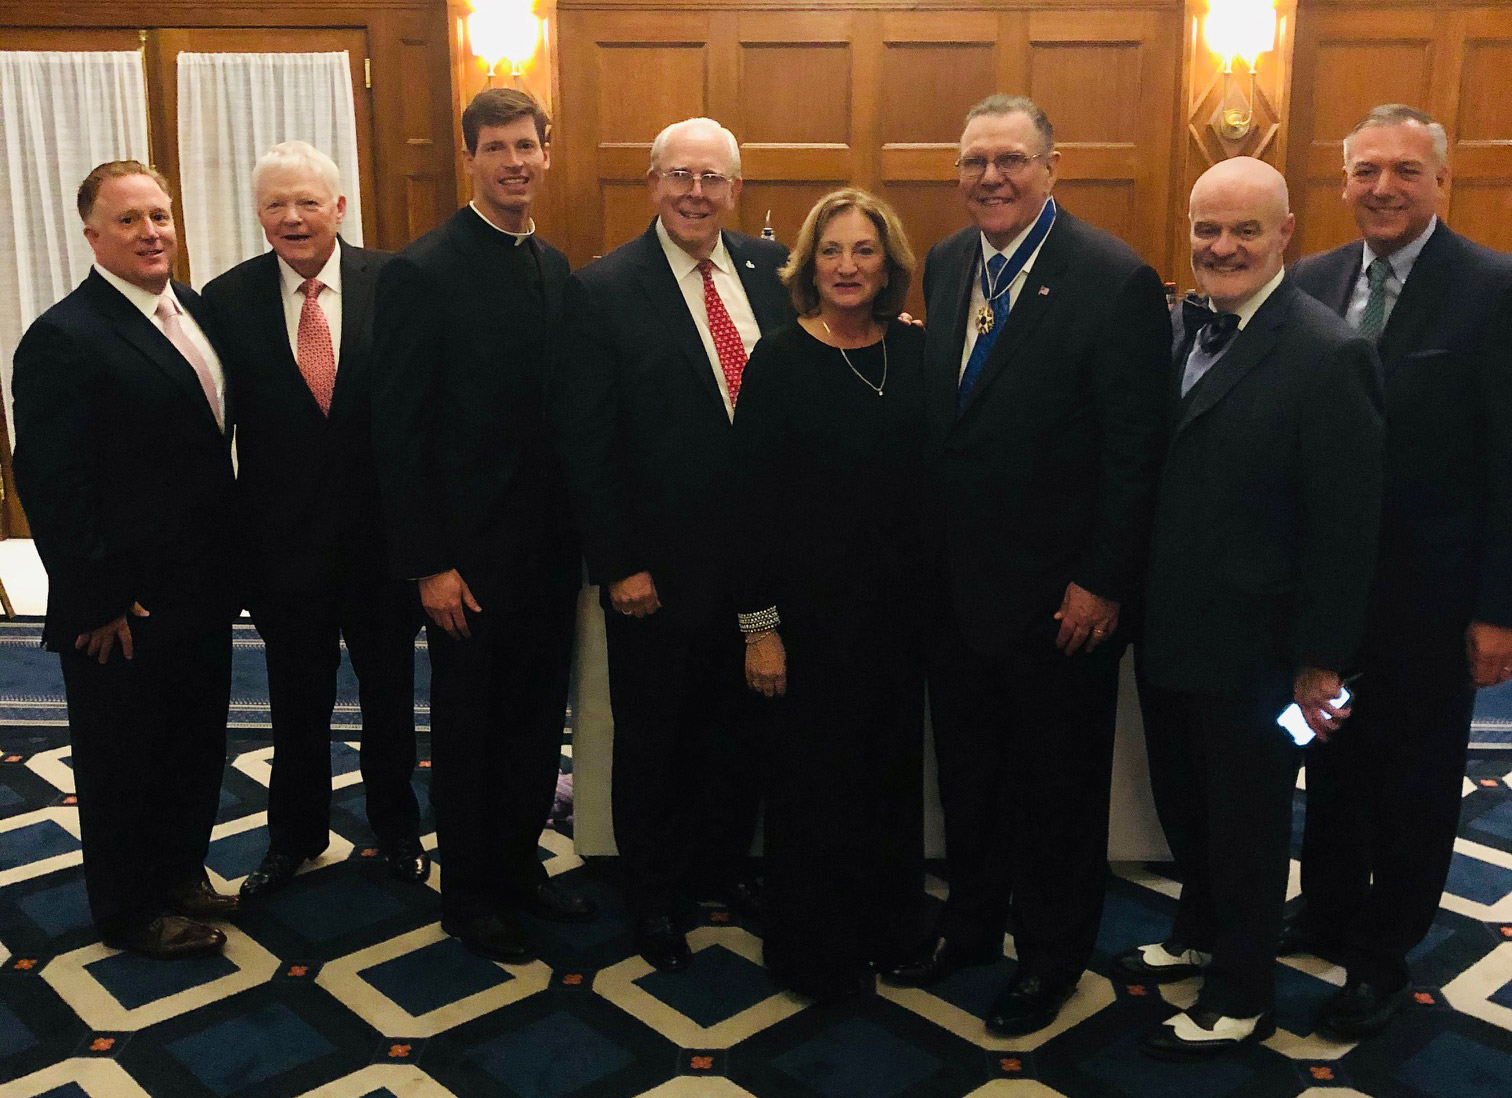 group photo of Fordham alumni attending a reception following the awarding of the Medal of Freedom to retired General Jack Keane